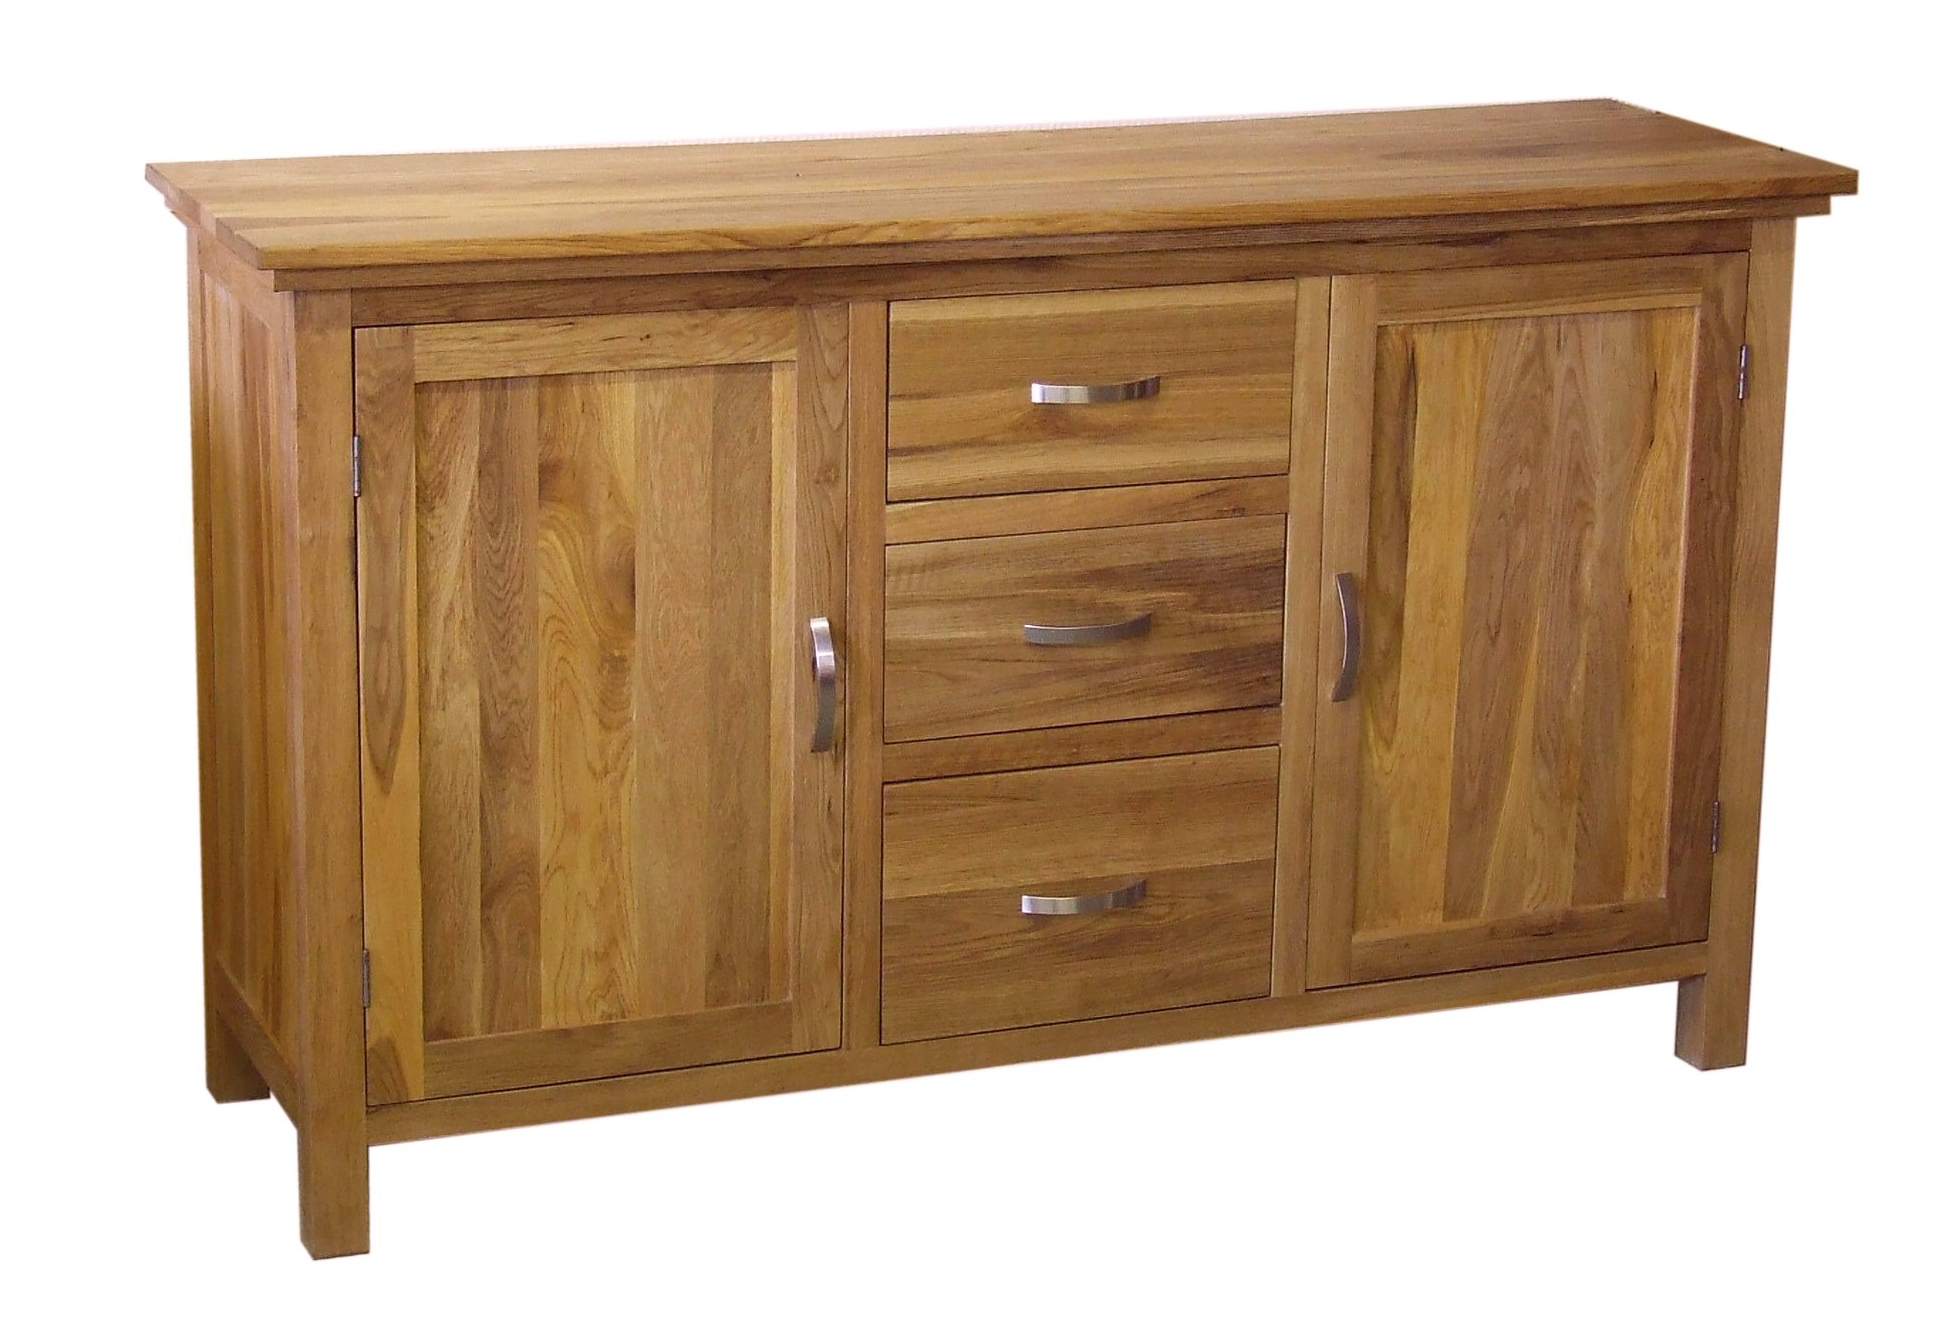 Antique oak sideboard modern wooden sideboard furniture